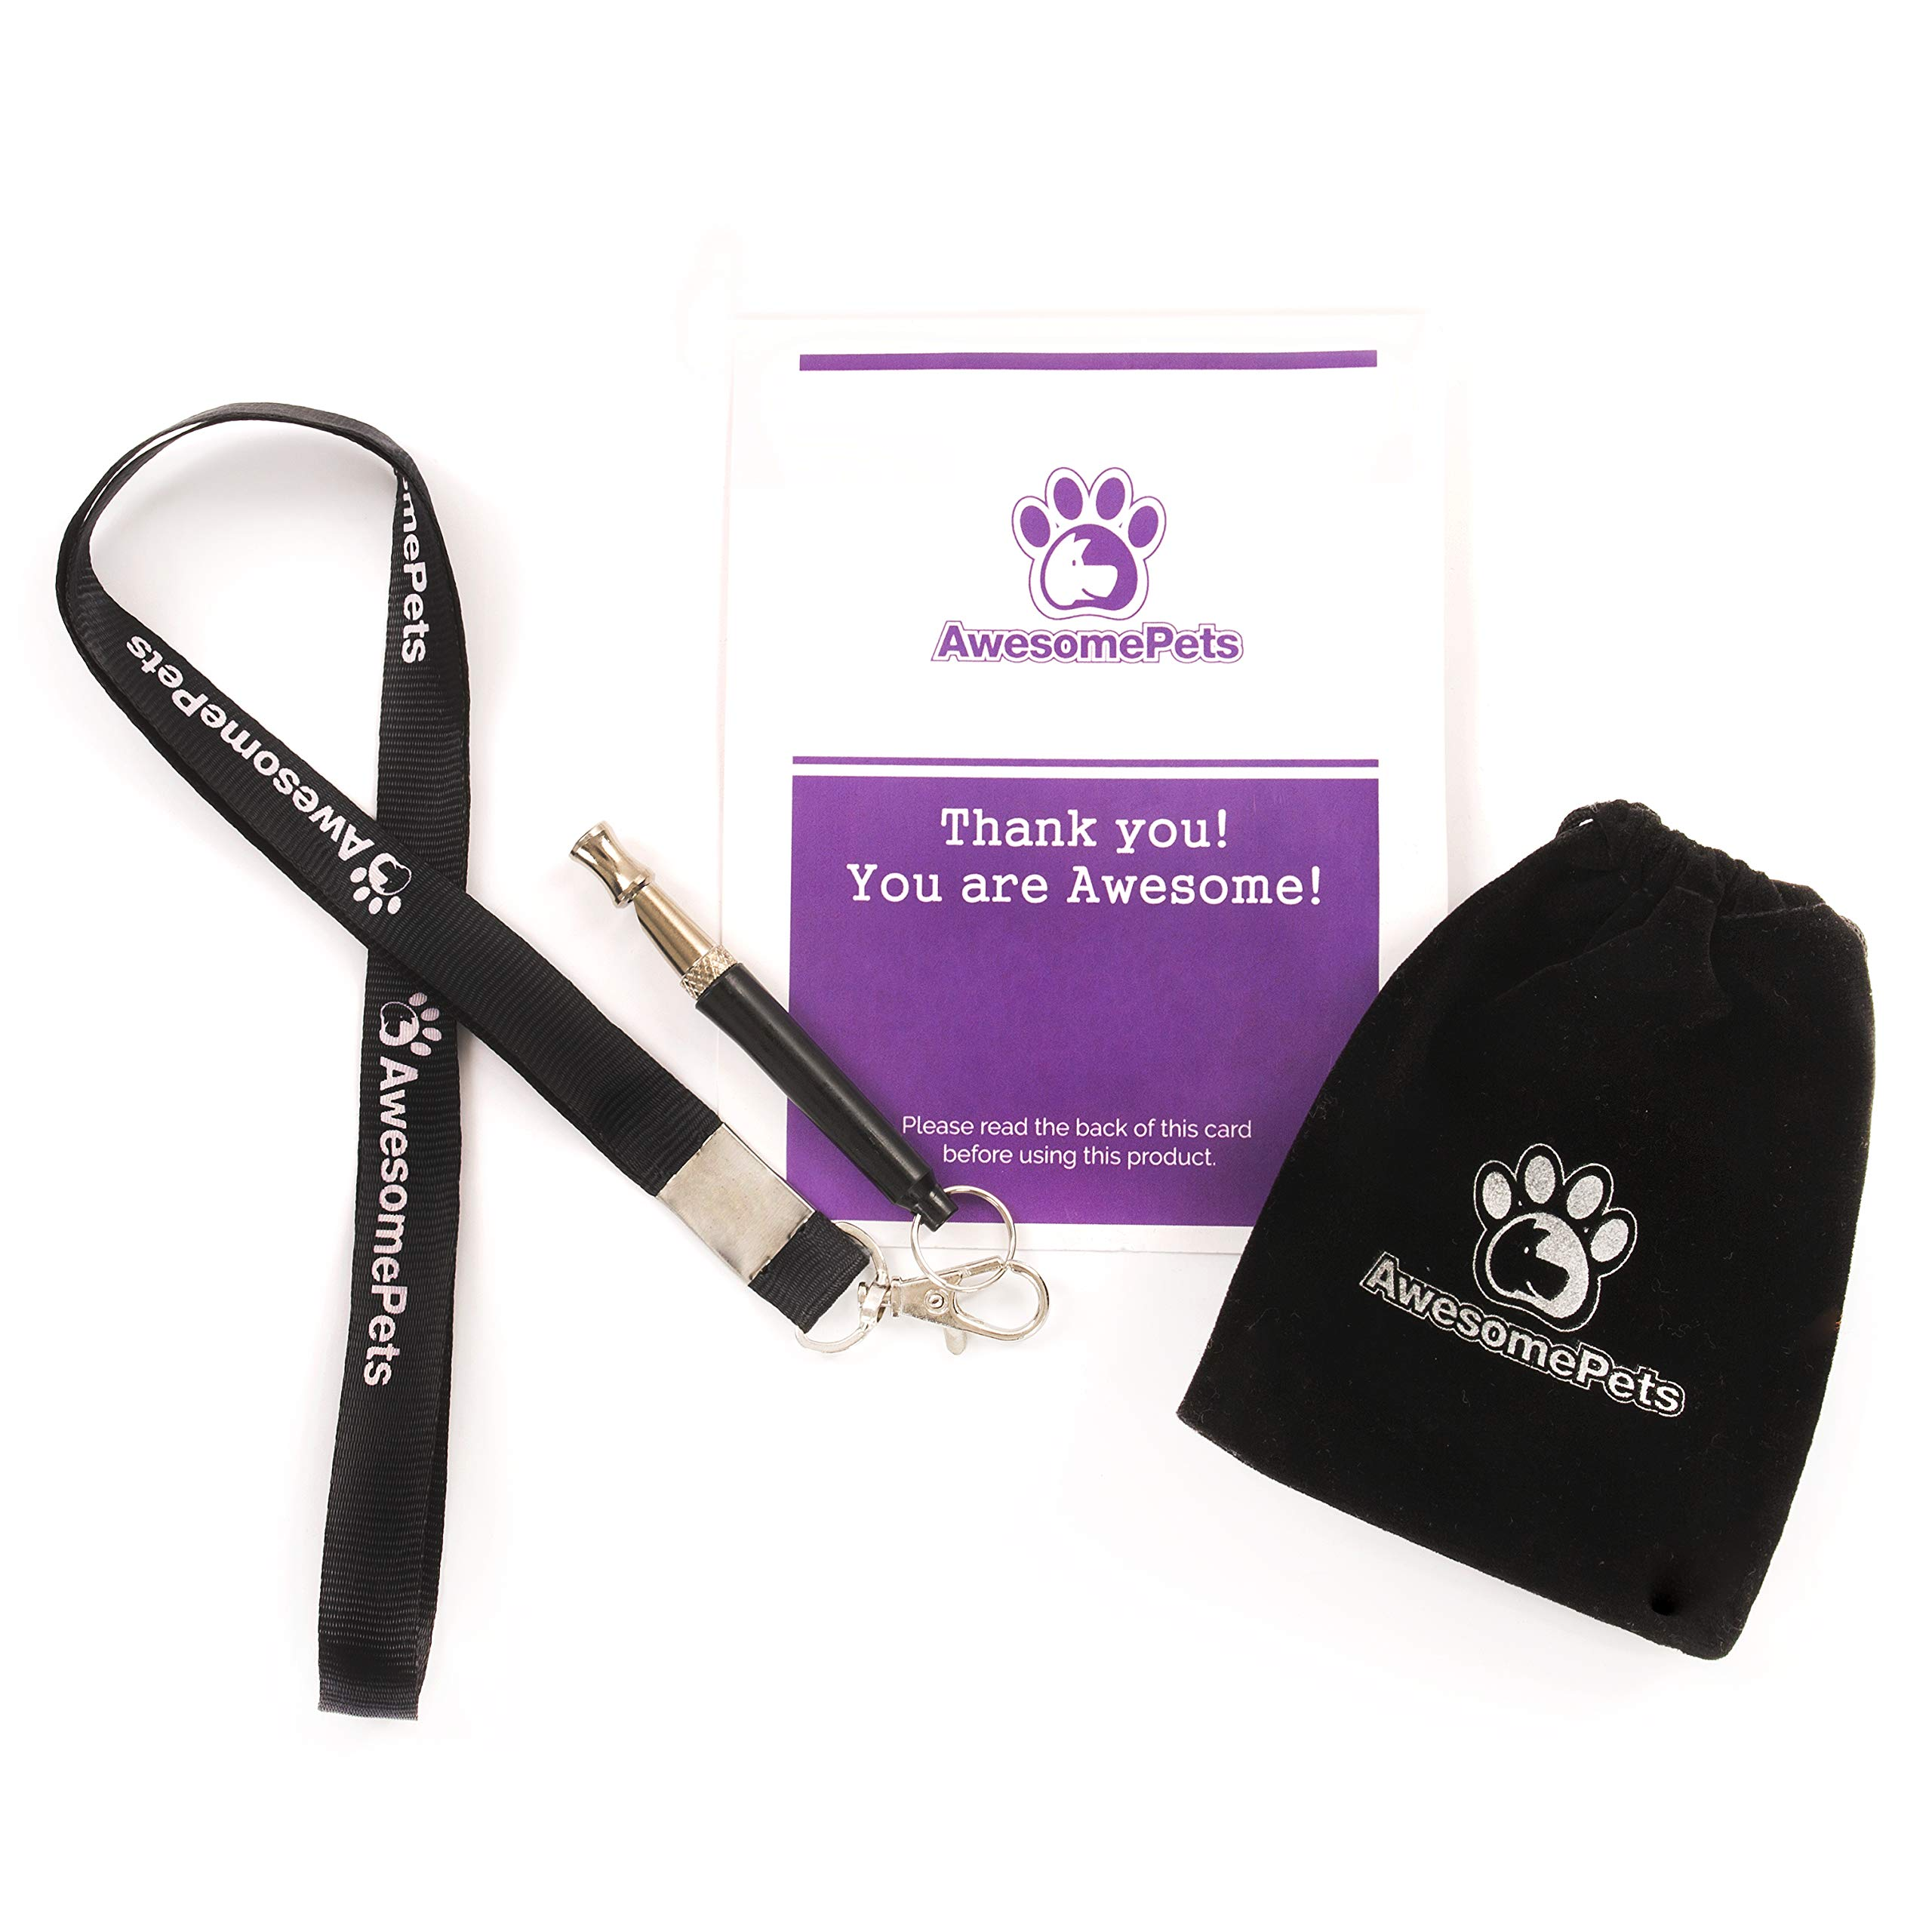 AwesomePets Ultrasonic Sound Training Dog Whistle Used to Control and Stop Barking Pet or Dog, Comes with Lanyard and Adjustable High Pitch Sound Whistle That Can Train Bark of Dogs. by AwesomePets